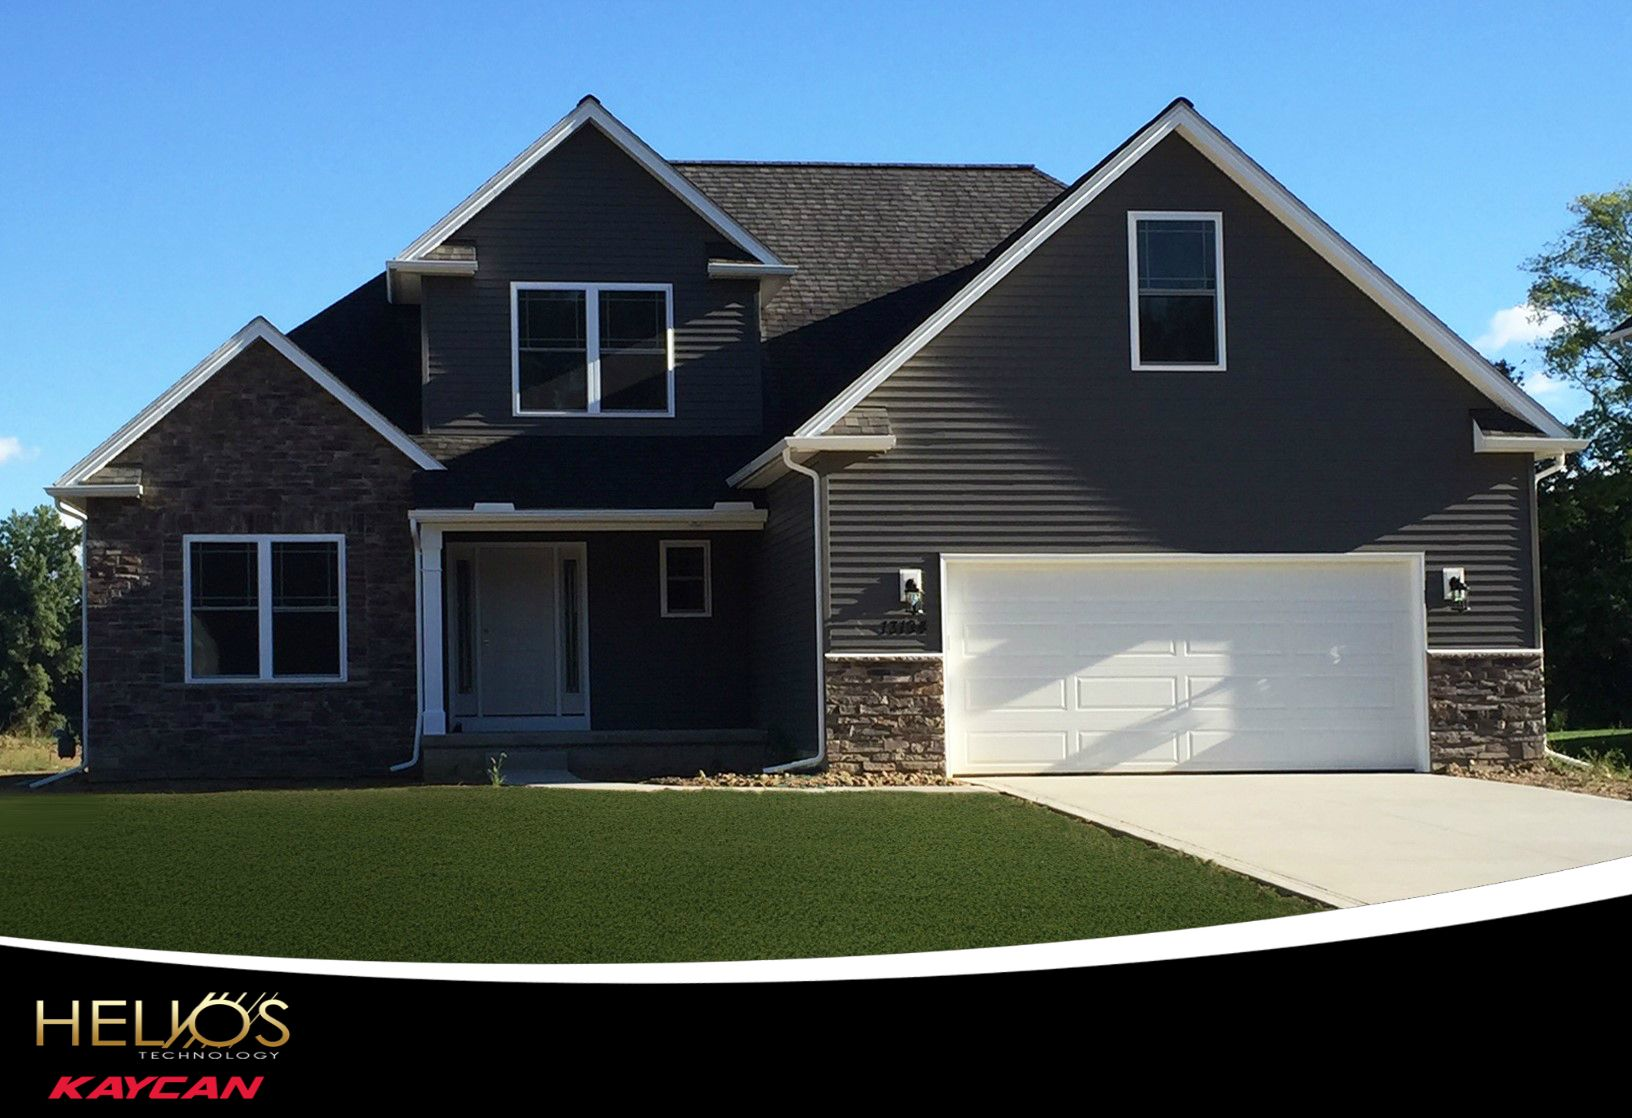 The Kaycan Davinci Collection With Helios Technology Is Armour For Your Home Vinyl Siding House Exterior Exterior Siding